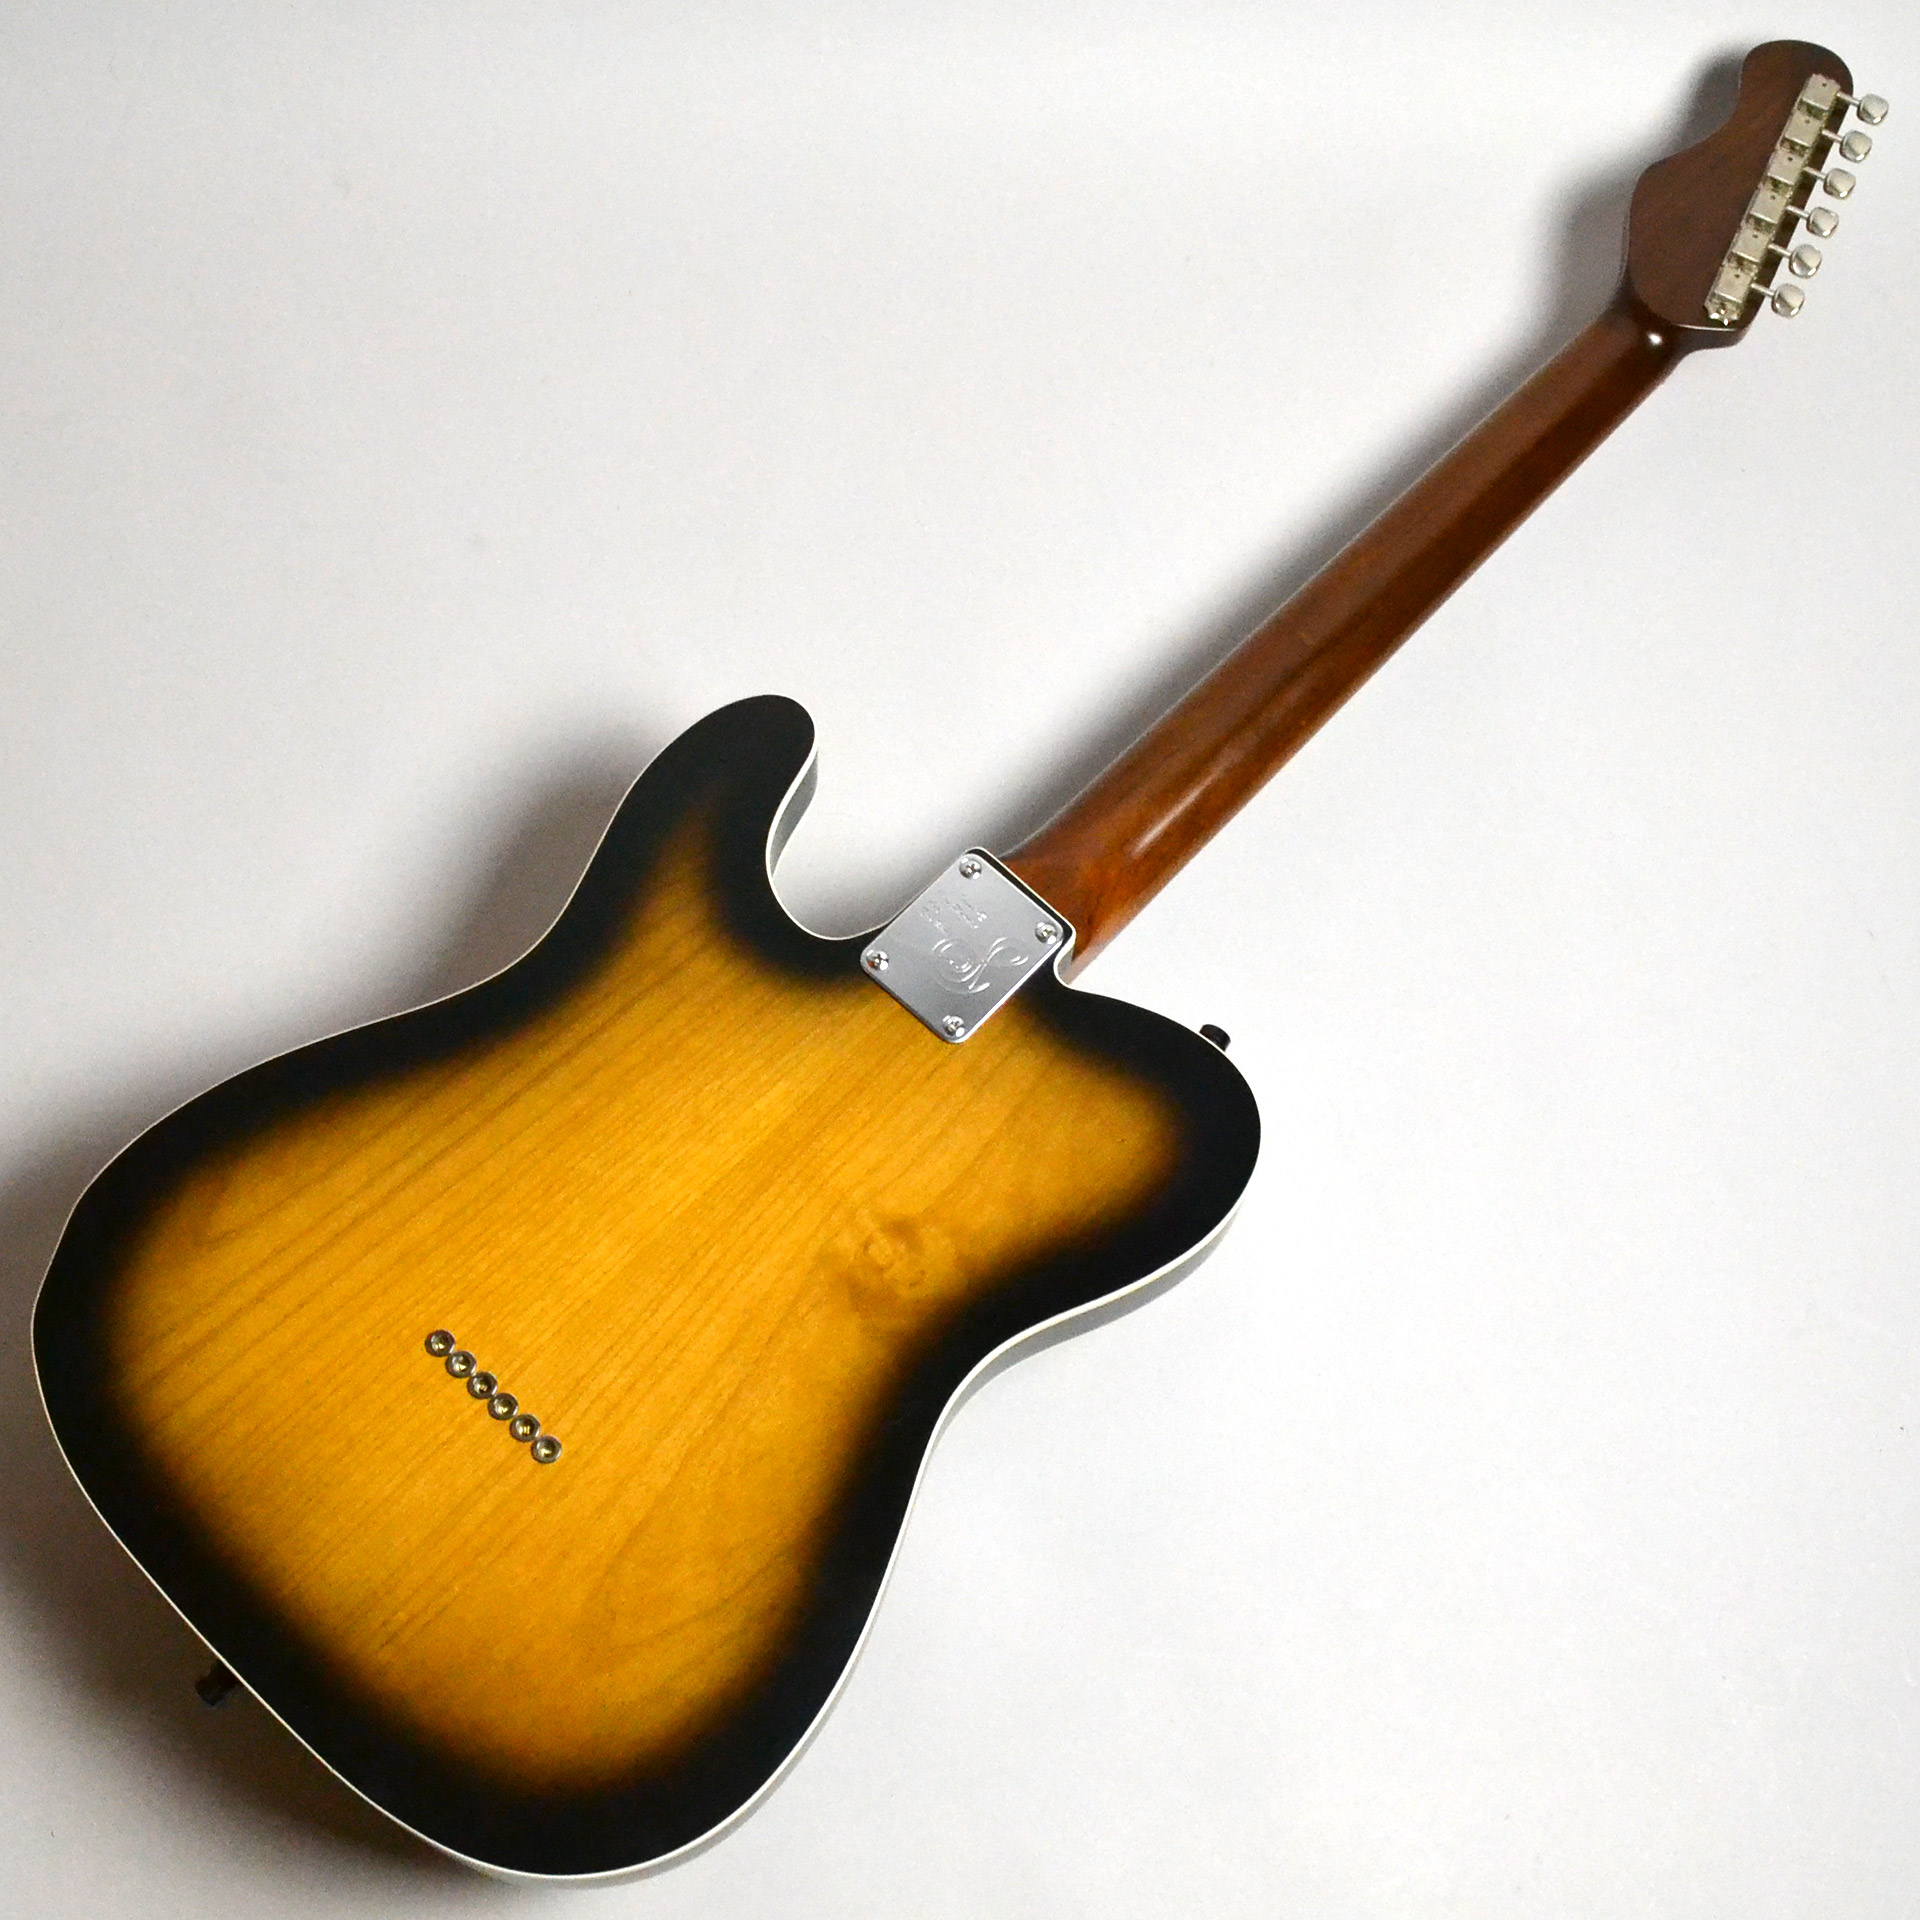 Classic Style T 【USED】のケース・その他画像